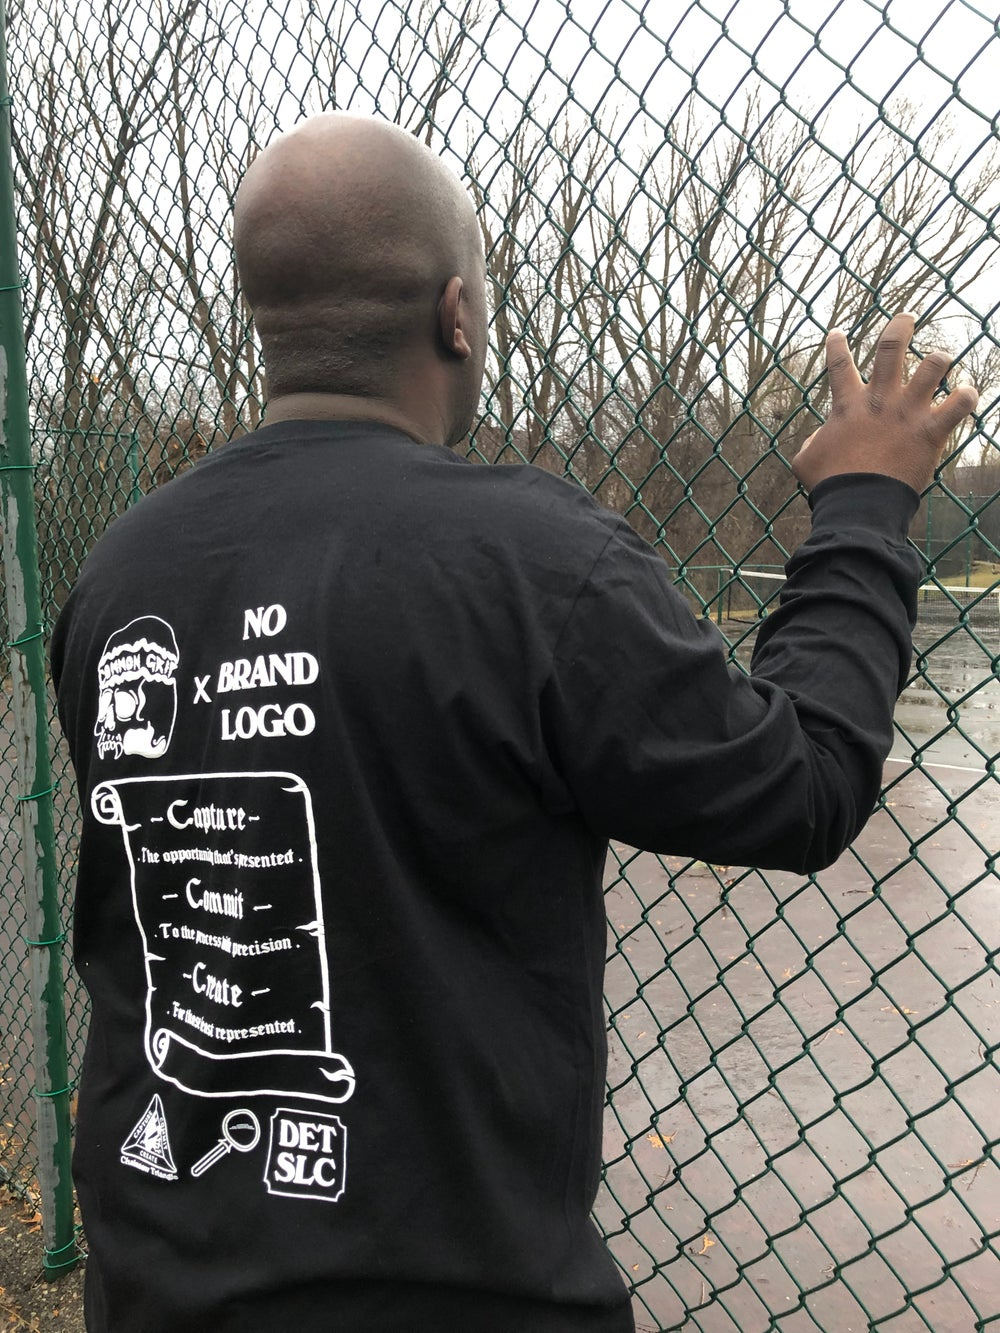 "Common Grip x No Brand Logo ""MWD and Skeleton hands"" black long sleeve t-shirt"